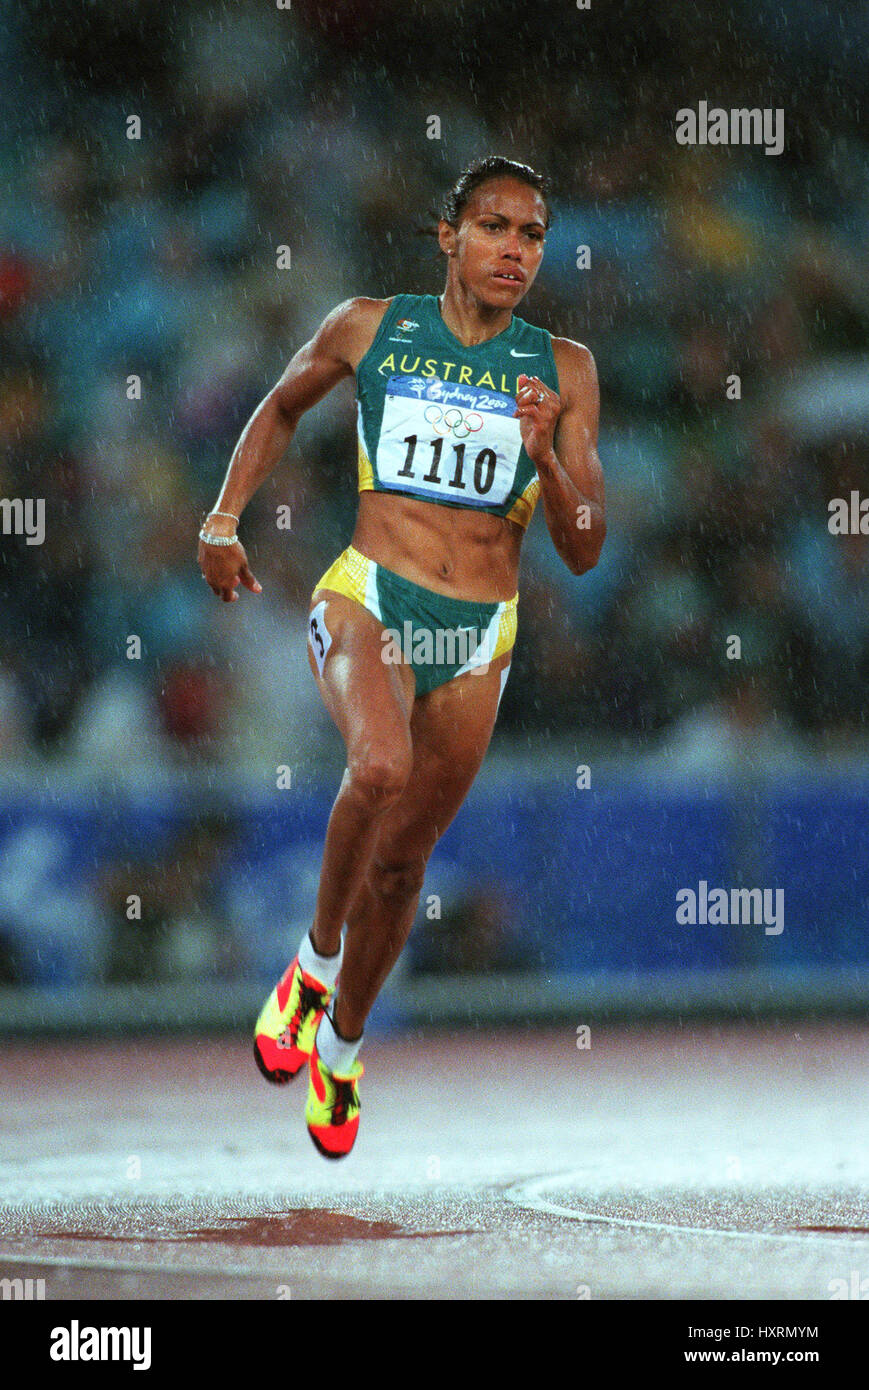 Communication on this topic: Mara Berni, cathy-freeman-2-olympic-medals-in-running/